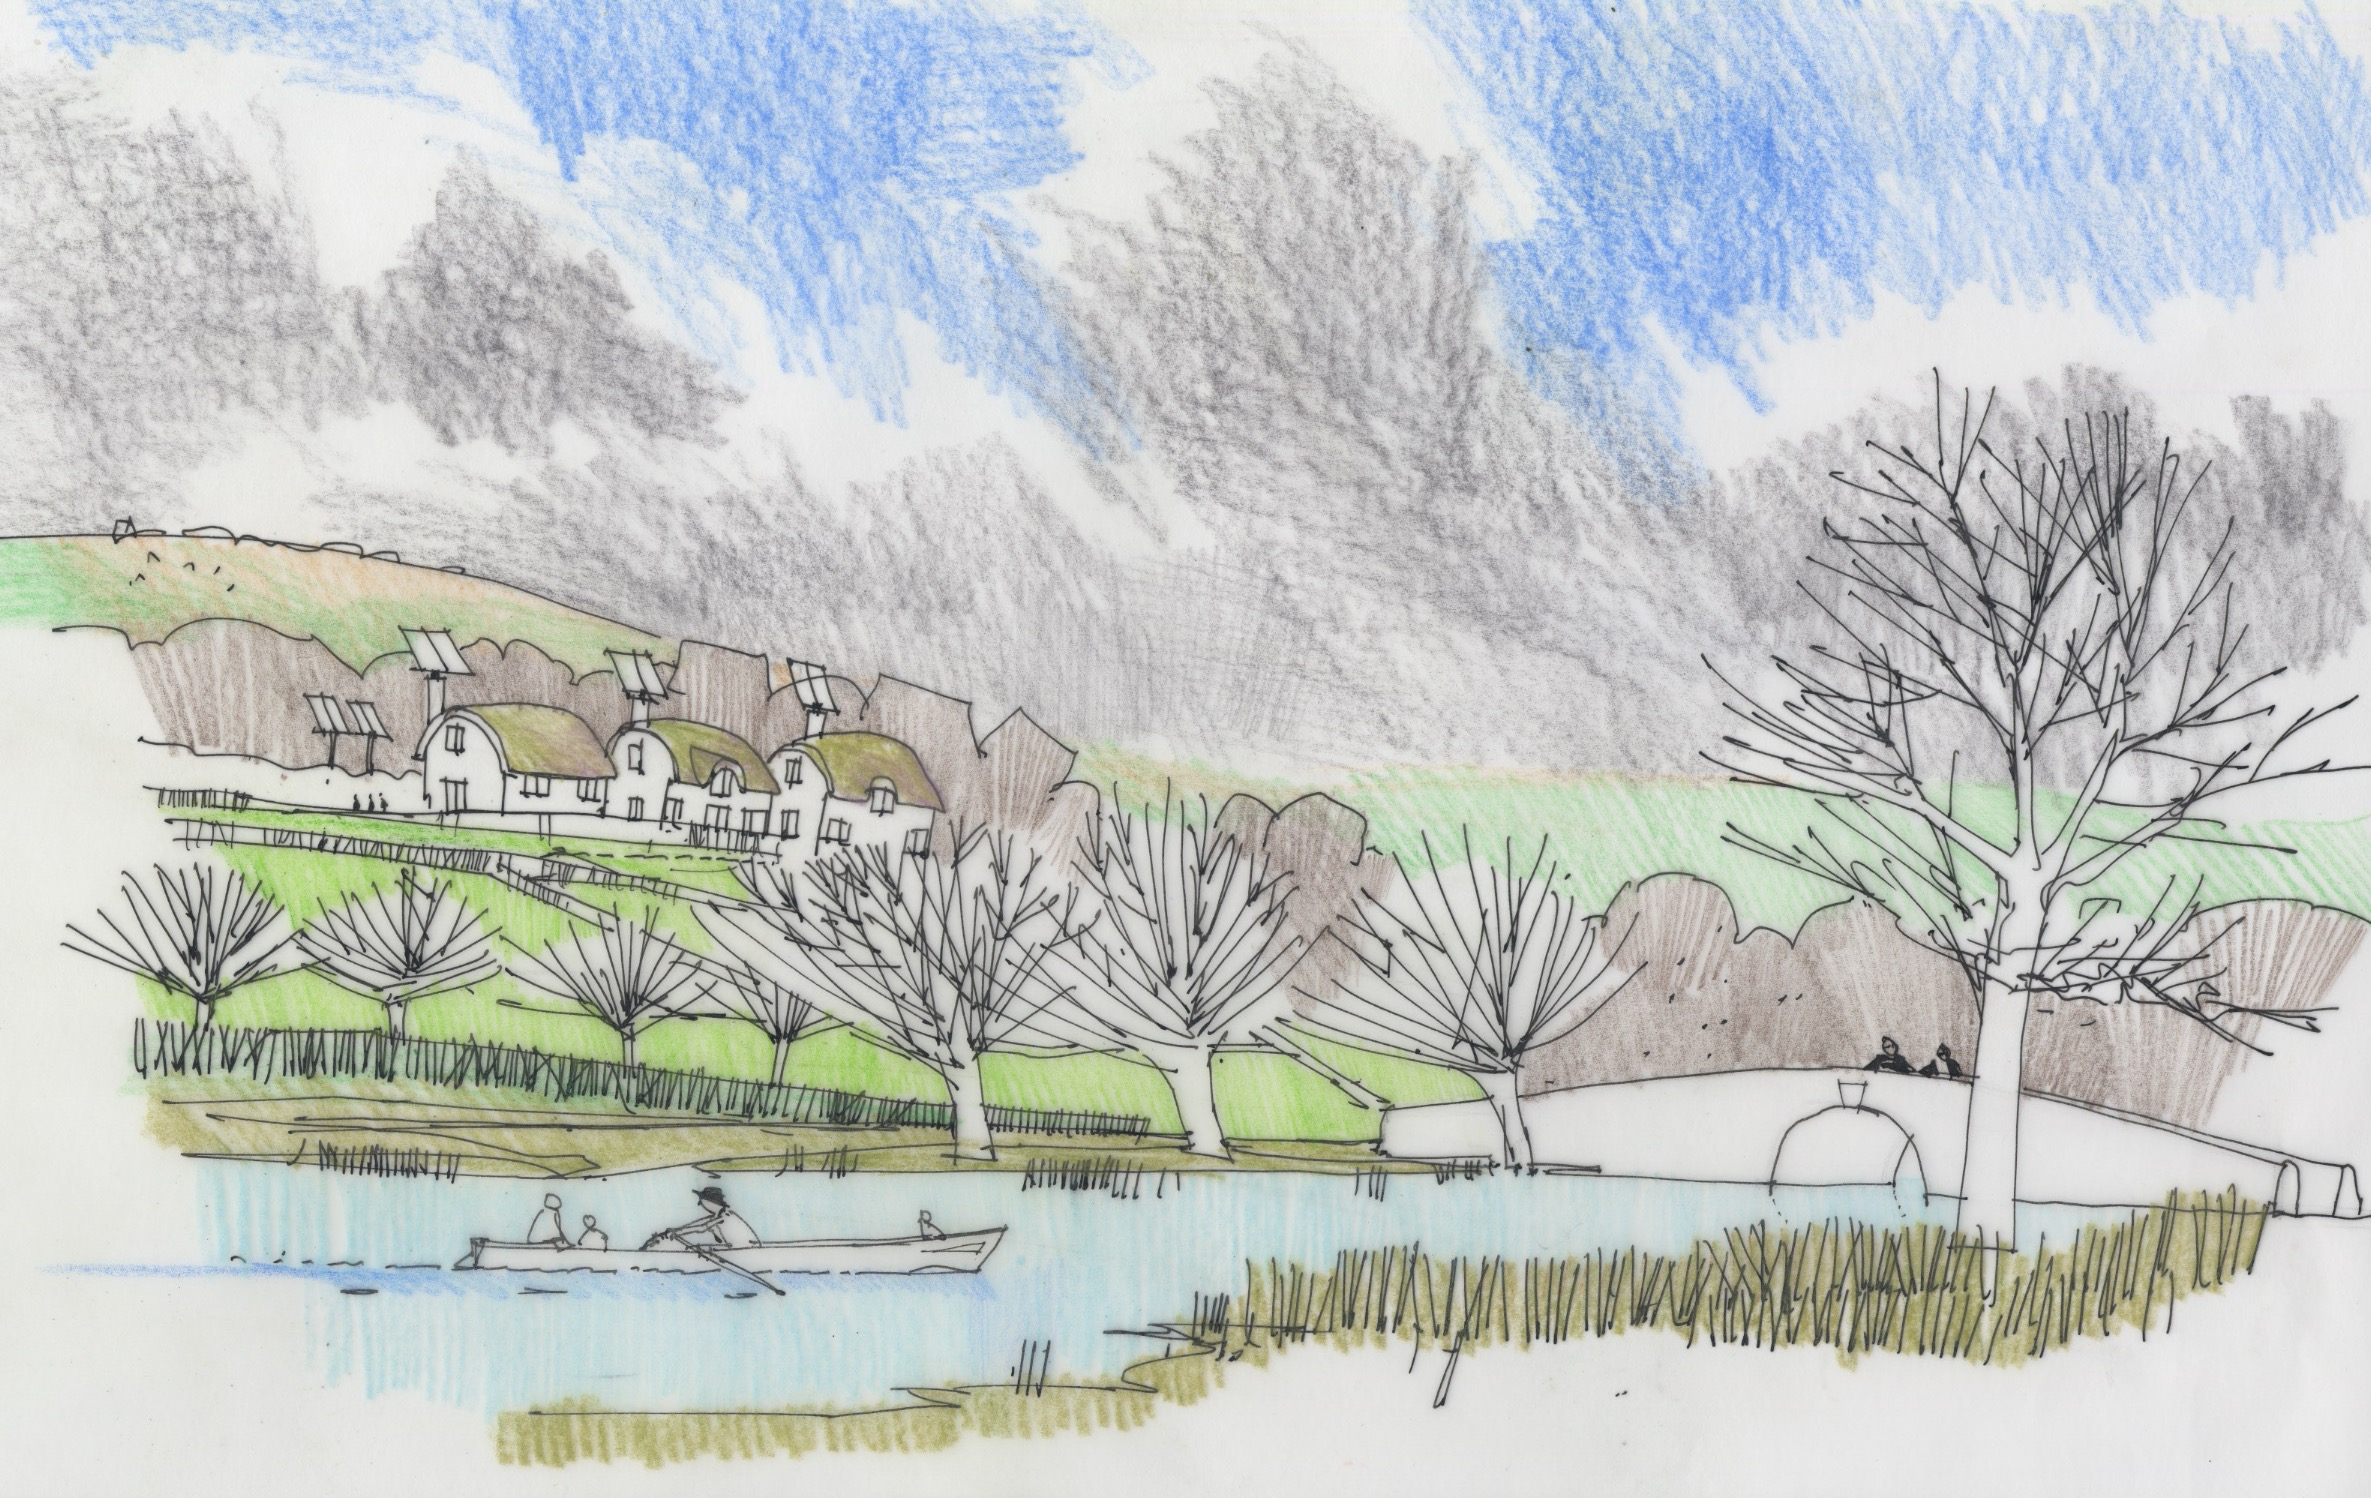 Visualisation of a possible future for the River Culm